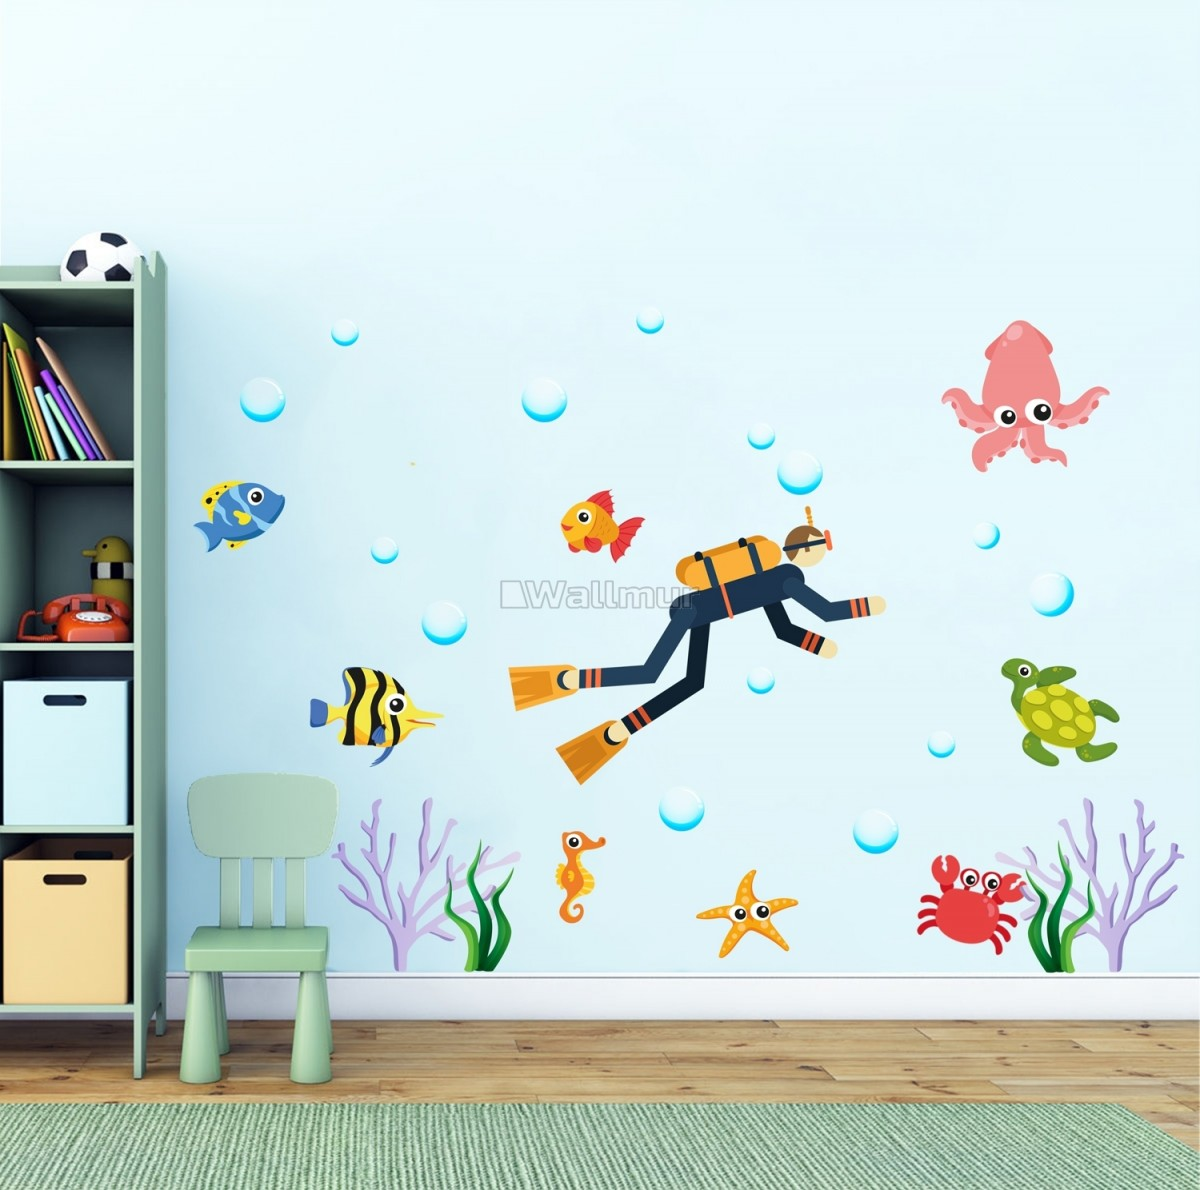 Kids Cartoon Sea Underwater with Fish Man Wall Decal Sticker